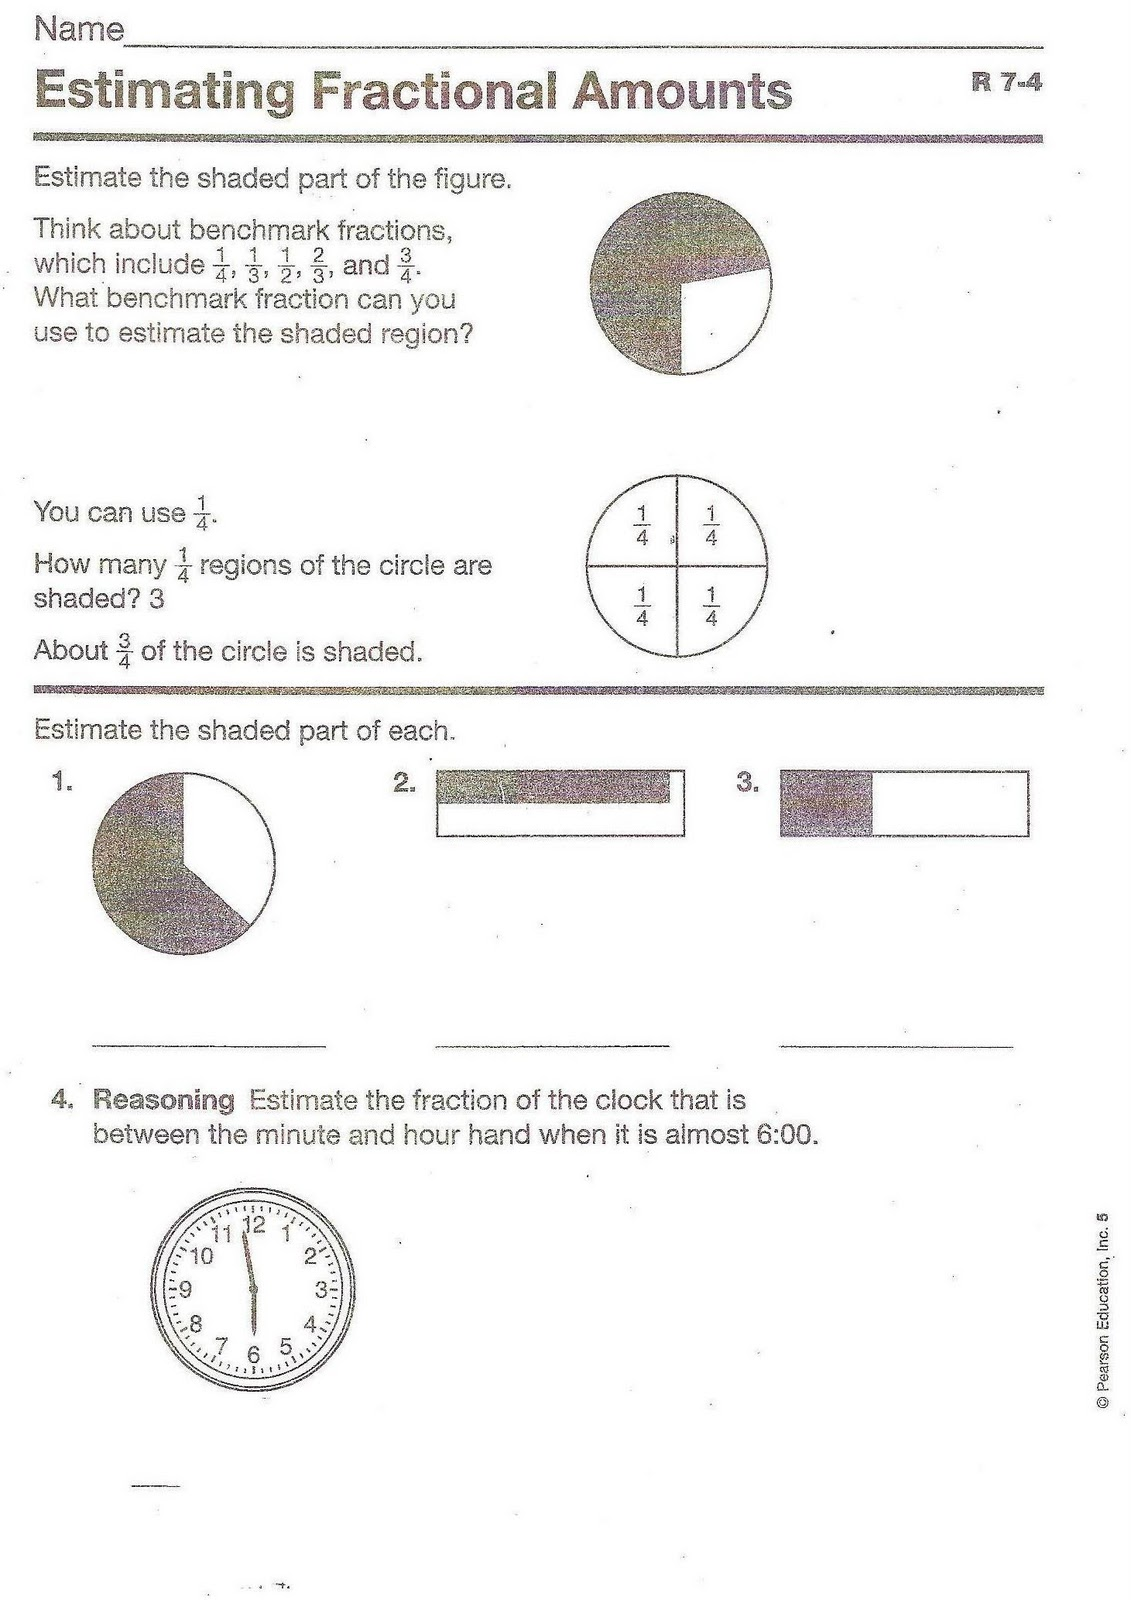 small resolution of Estimating Fractional Amounts Worksheet Answers   Printable Worksheets and  Activities for Teachers